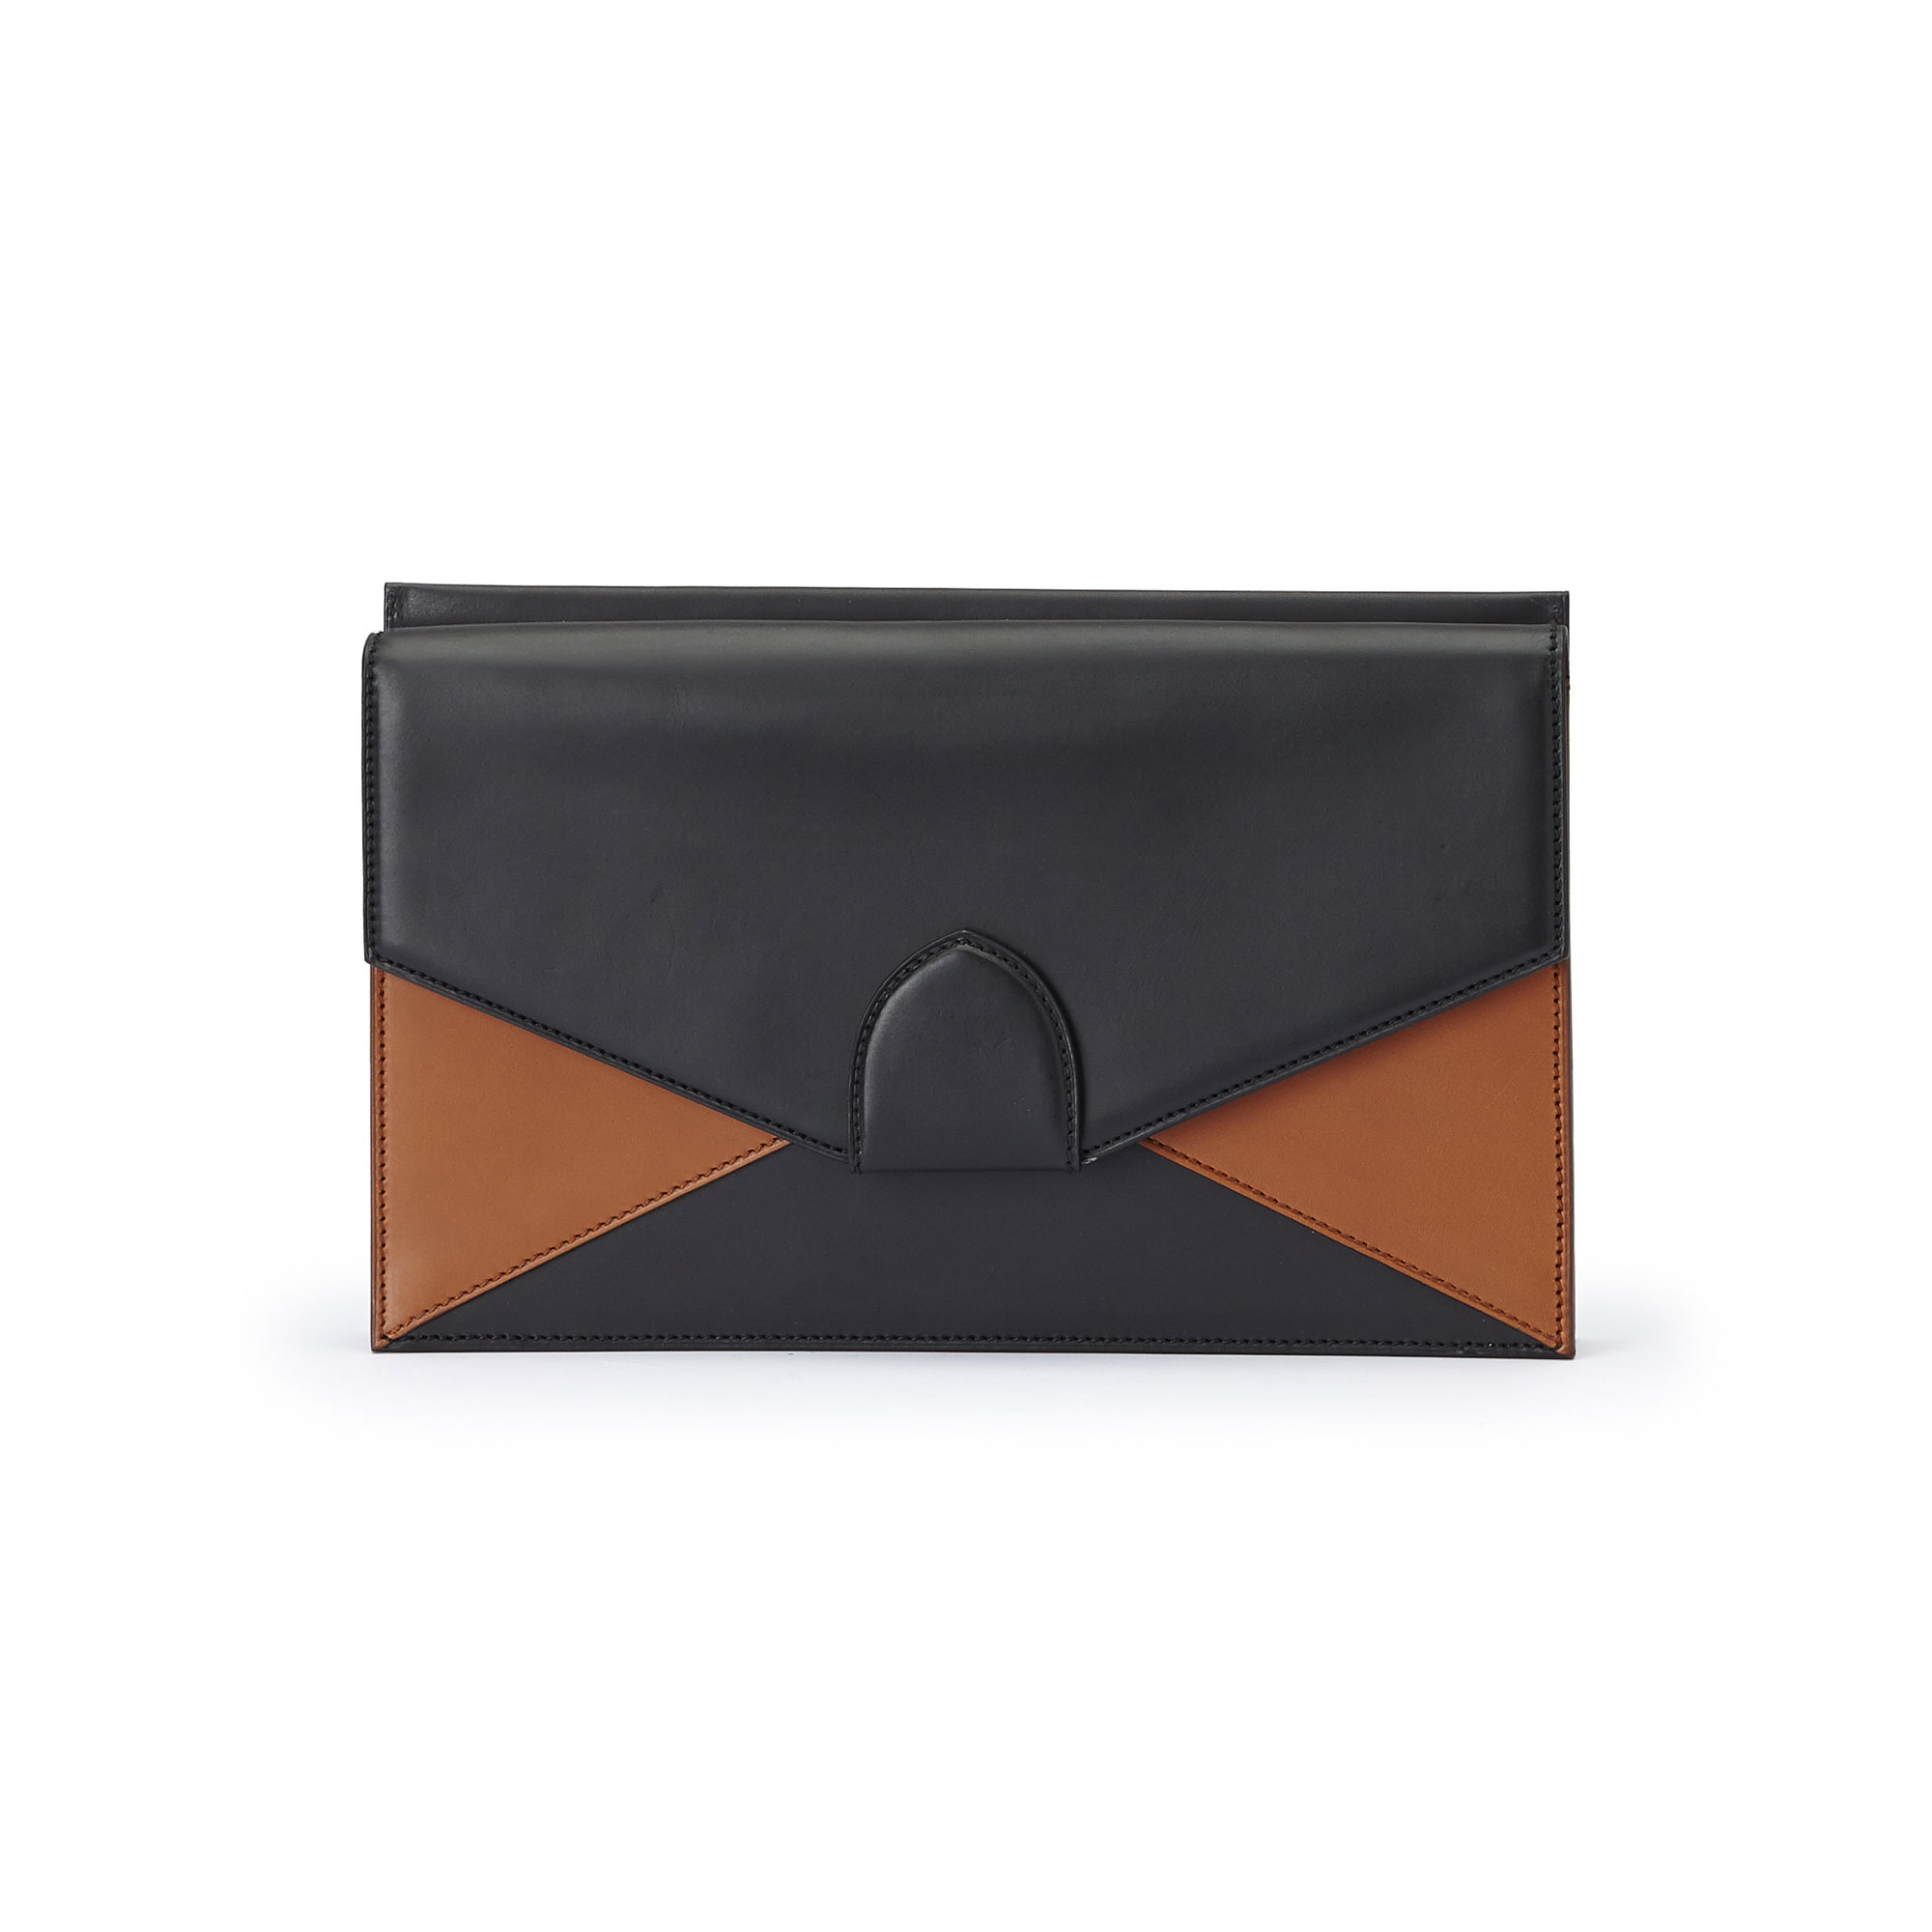 The black and terrabruciata french calf Dafne Clutch bag by Bertoni 1949 01